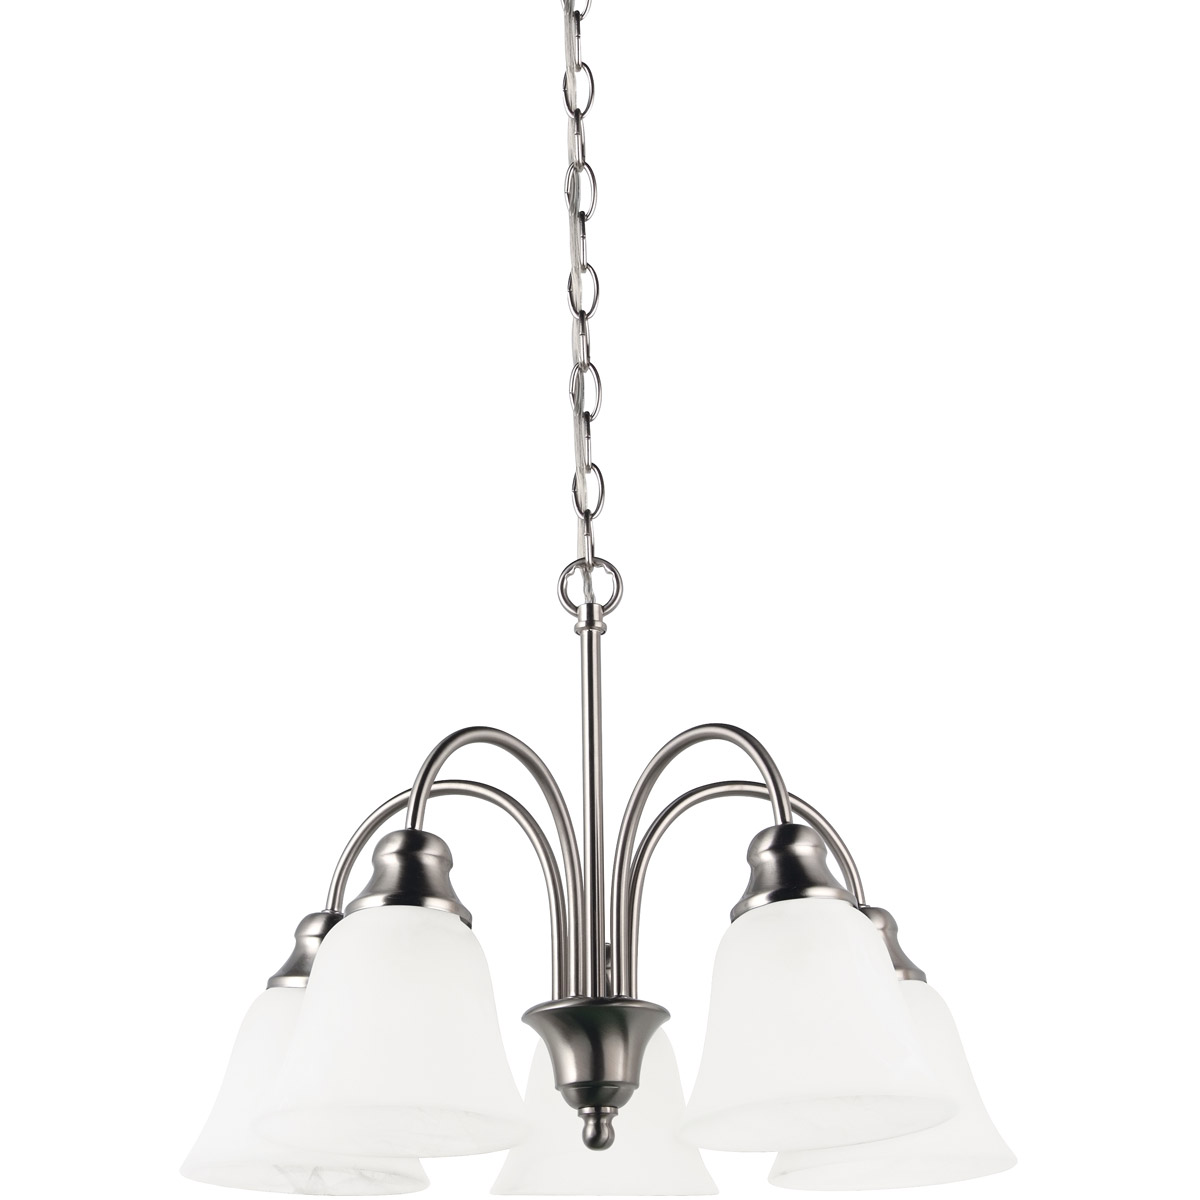 Sea Gull Lighting Windgate 5 Light Chandelier in Brushed Nickel 35950-962